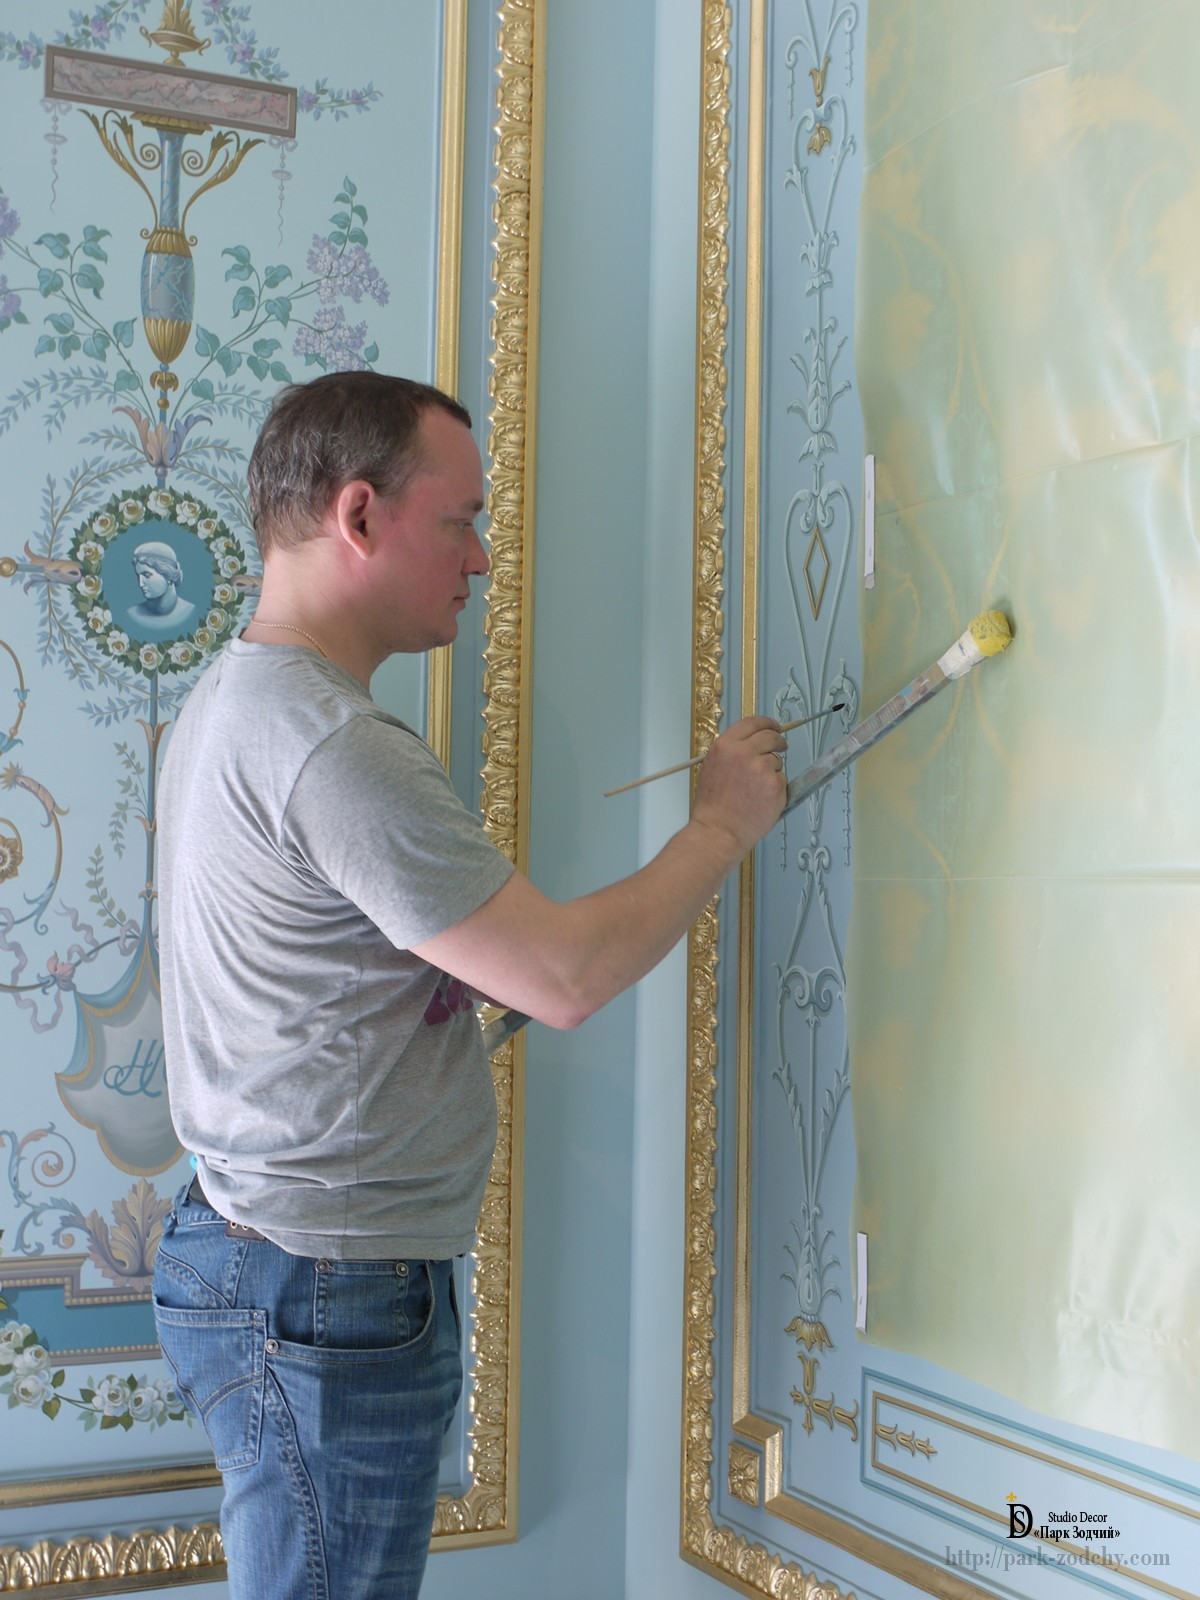 The execution of the painting on the bedroom wall